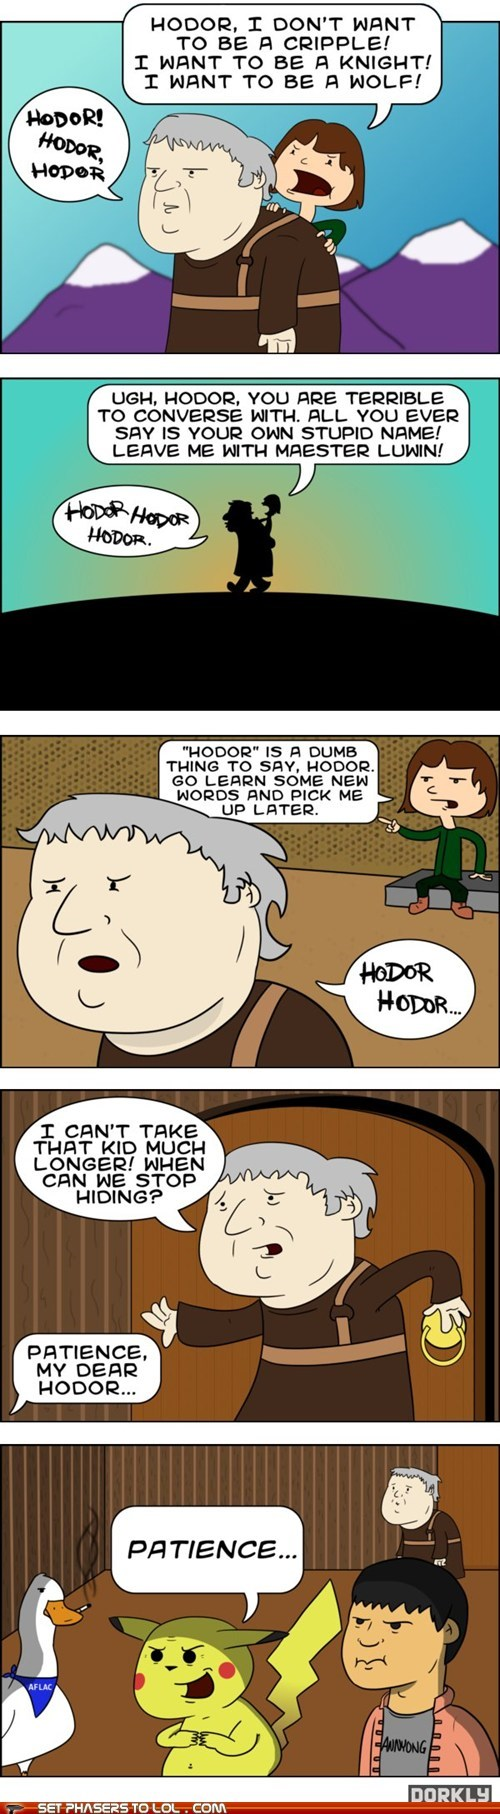 a song of ice and fire Aflac annoyed comic hodor name pikachu speech